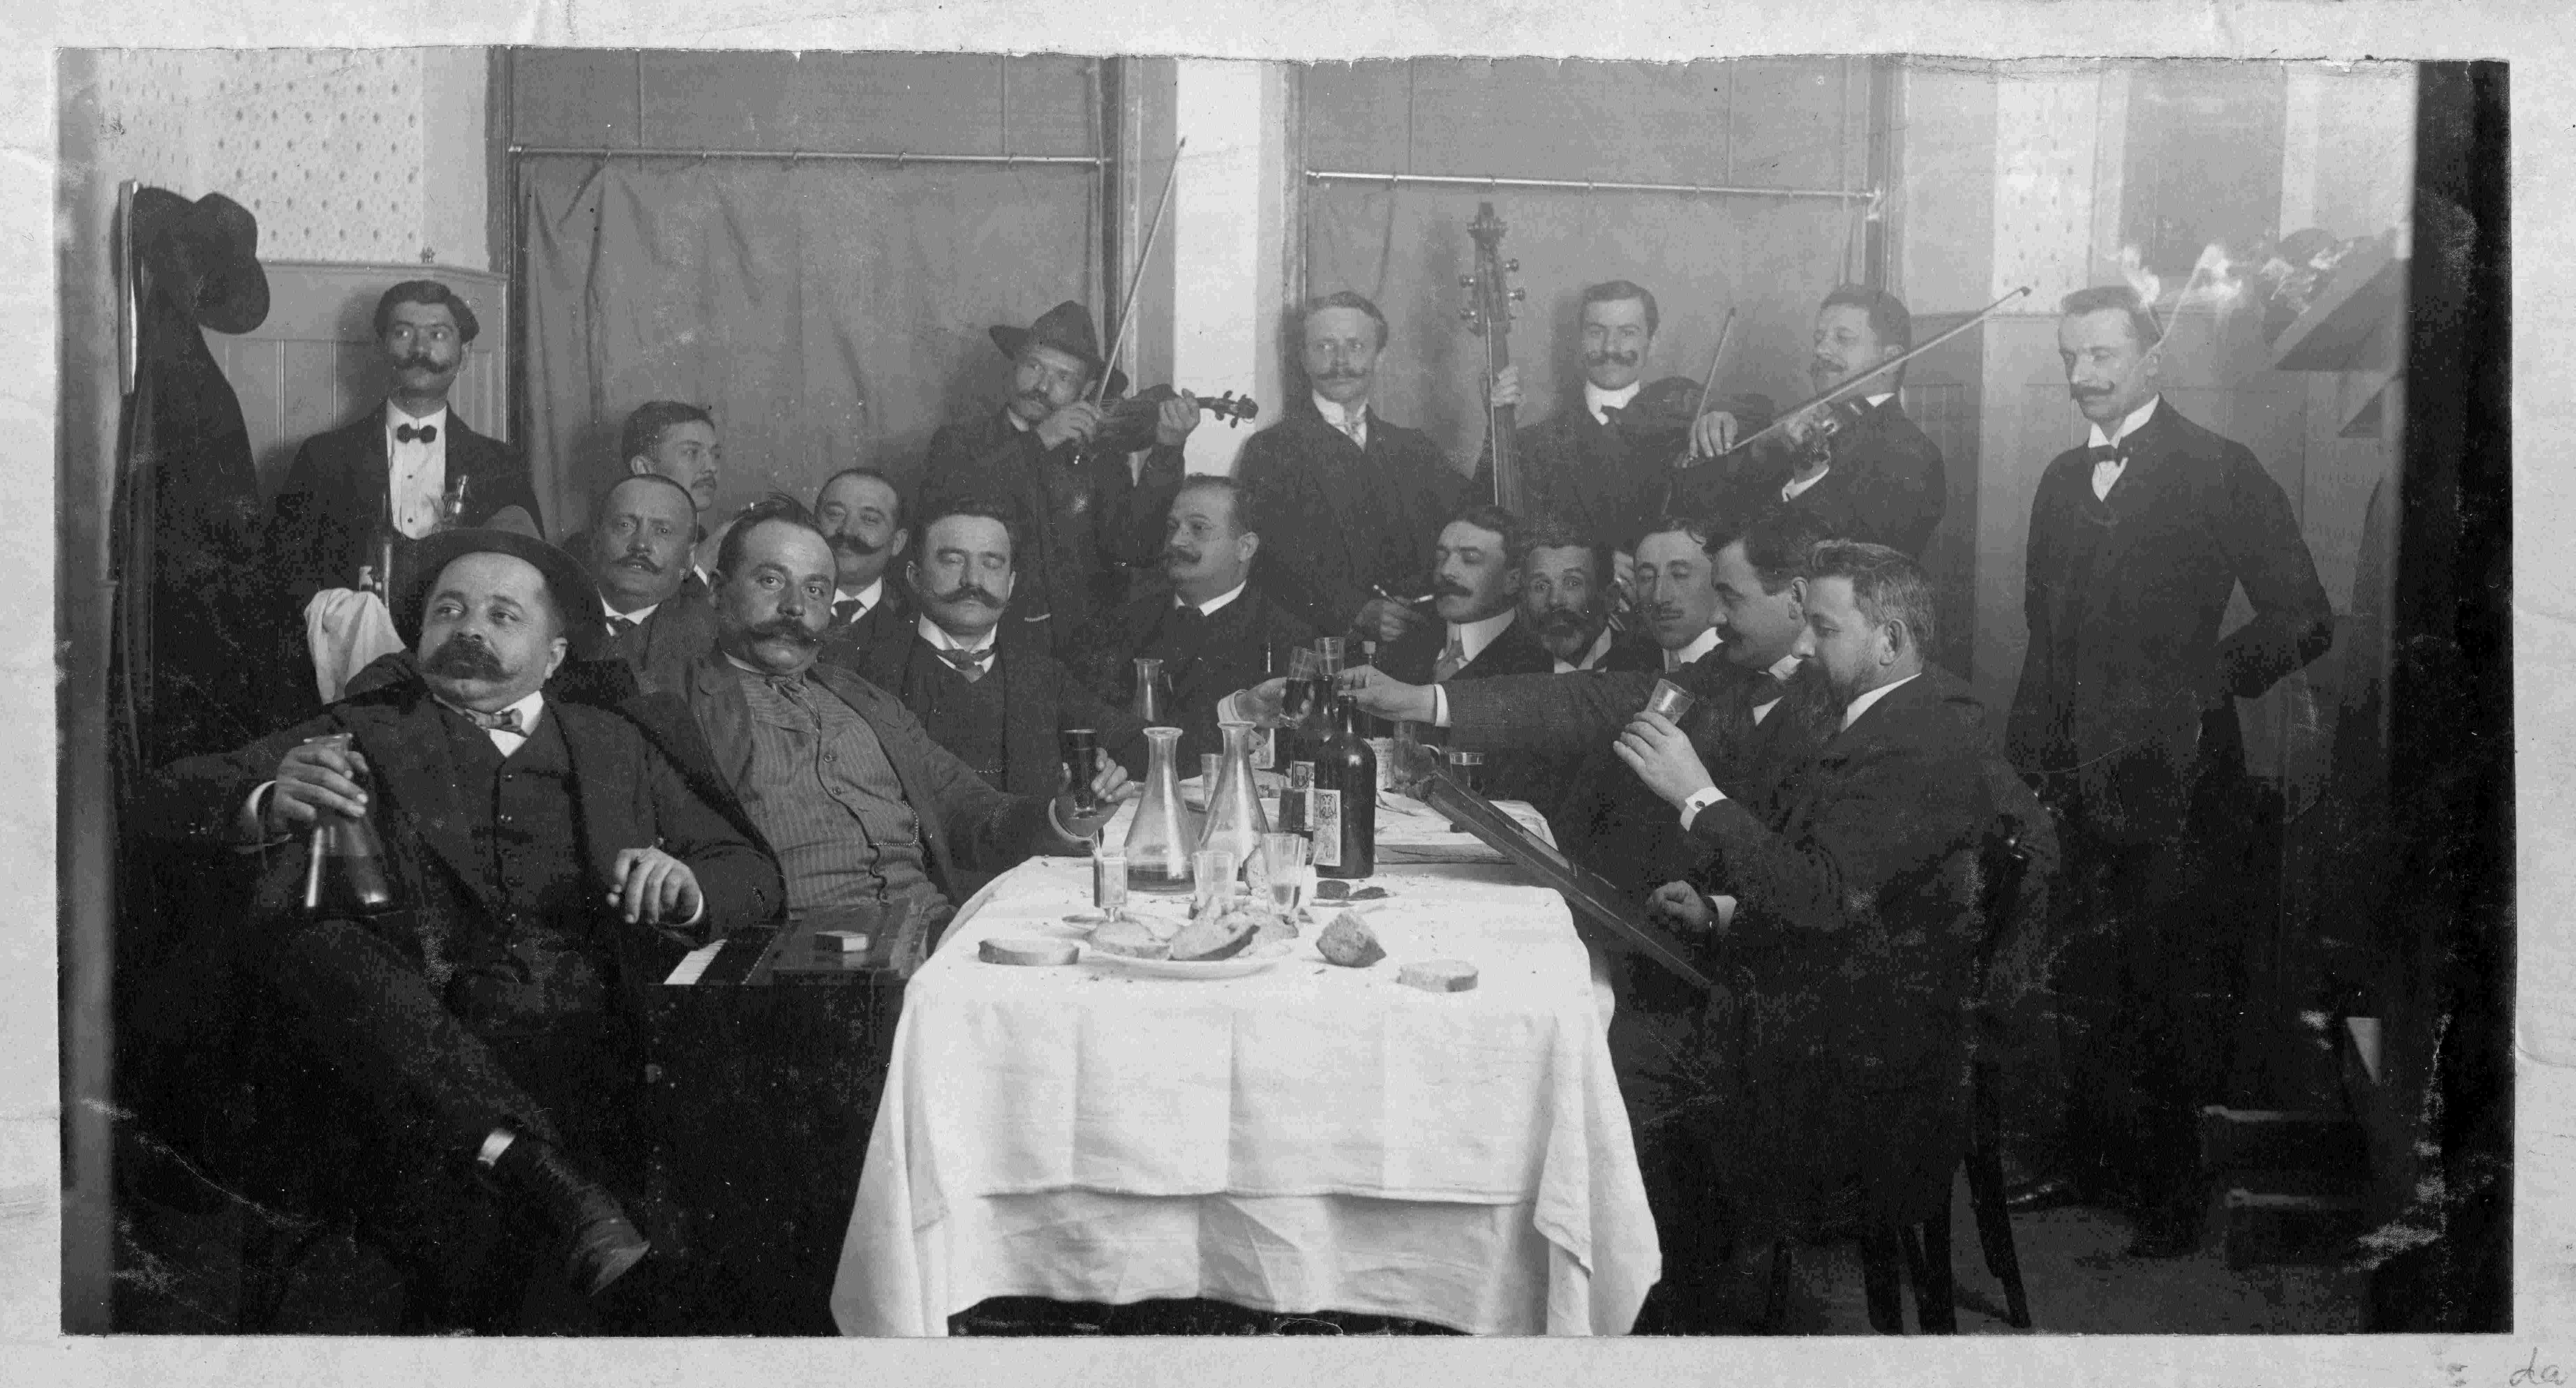 """Petrović (violinist with the hat) conducts the musical band """"Suz"""" during a tavern party. (SASA Archive, 14197/1)"""